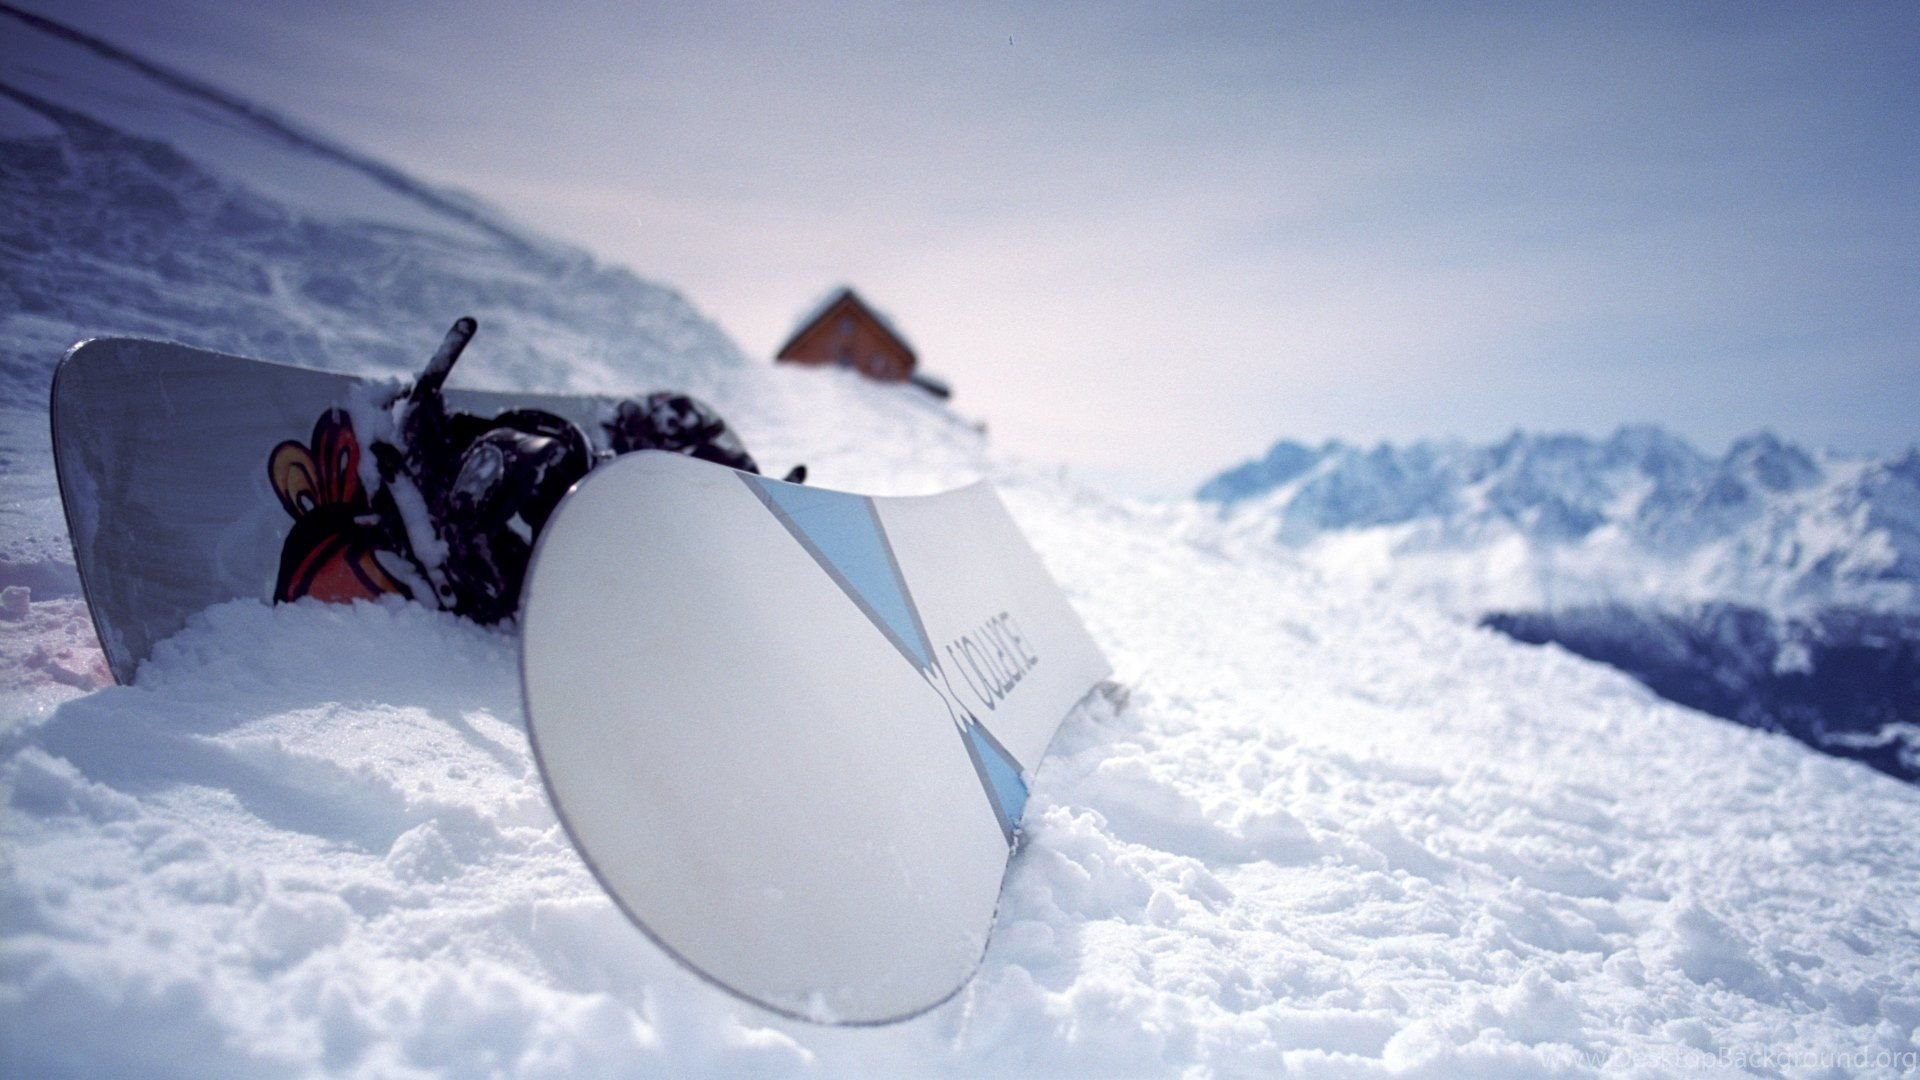 Ready For Snowboarding Wallpapers Hd Wallpapers Desktop Background